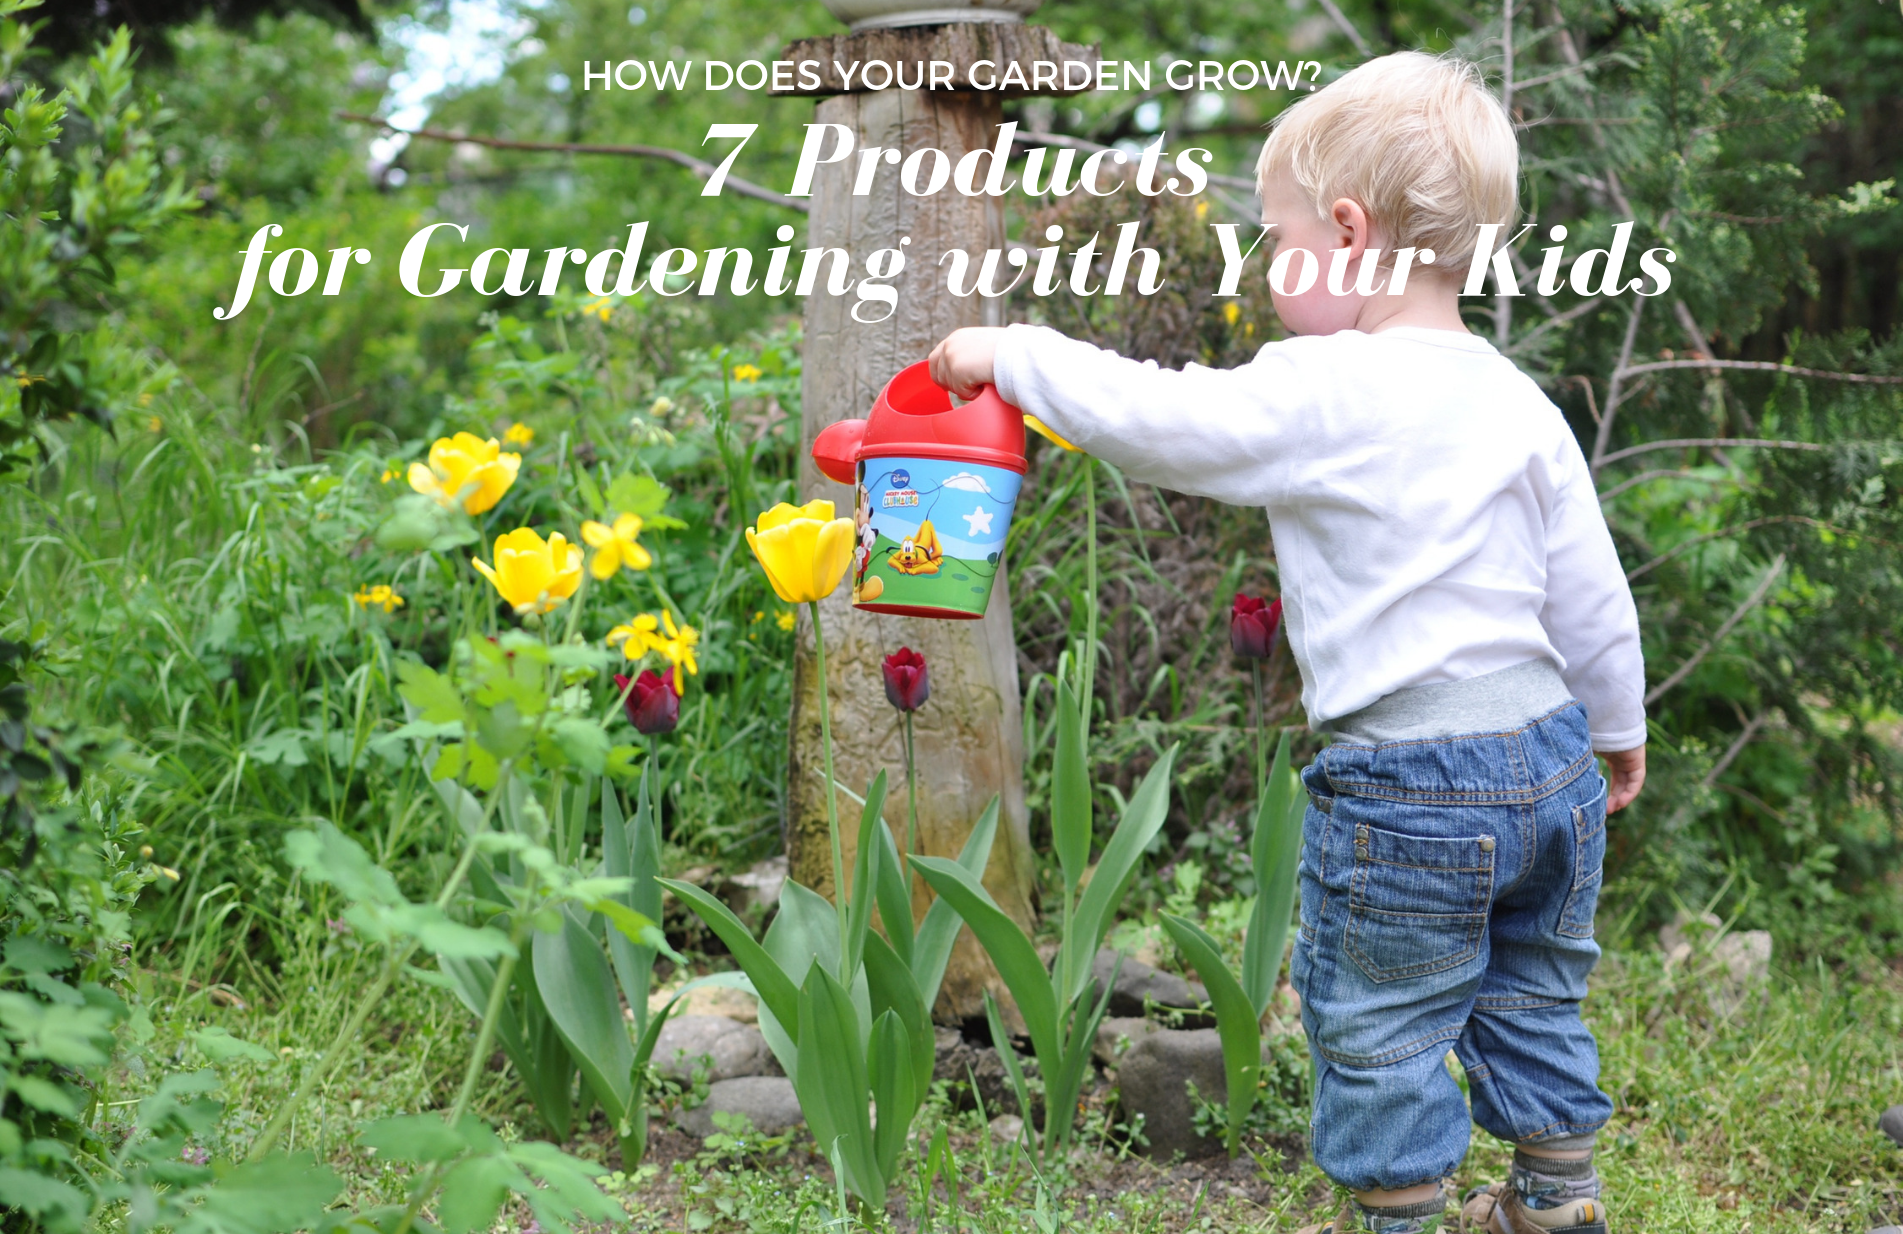 How Does Your Garden Grow? Our 7 Favorite Gardening Tools for Kids